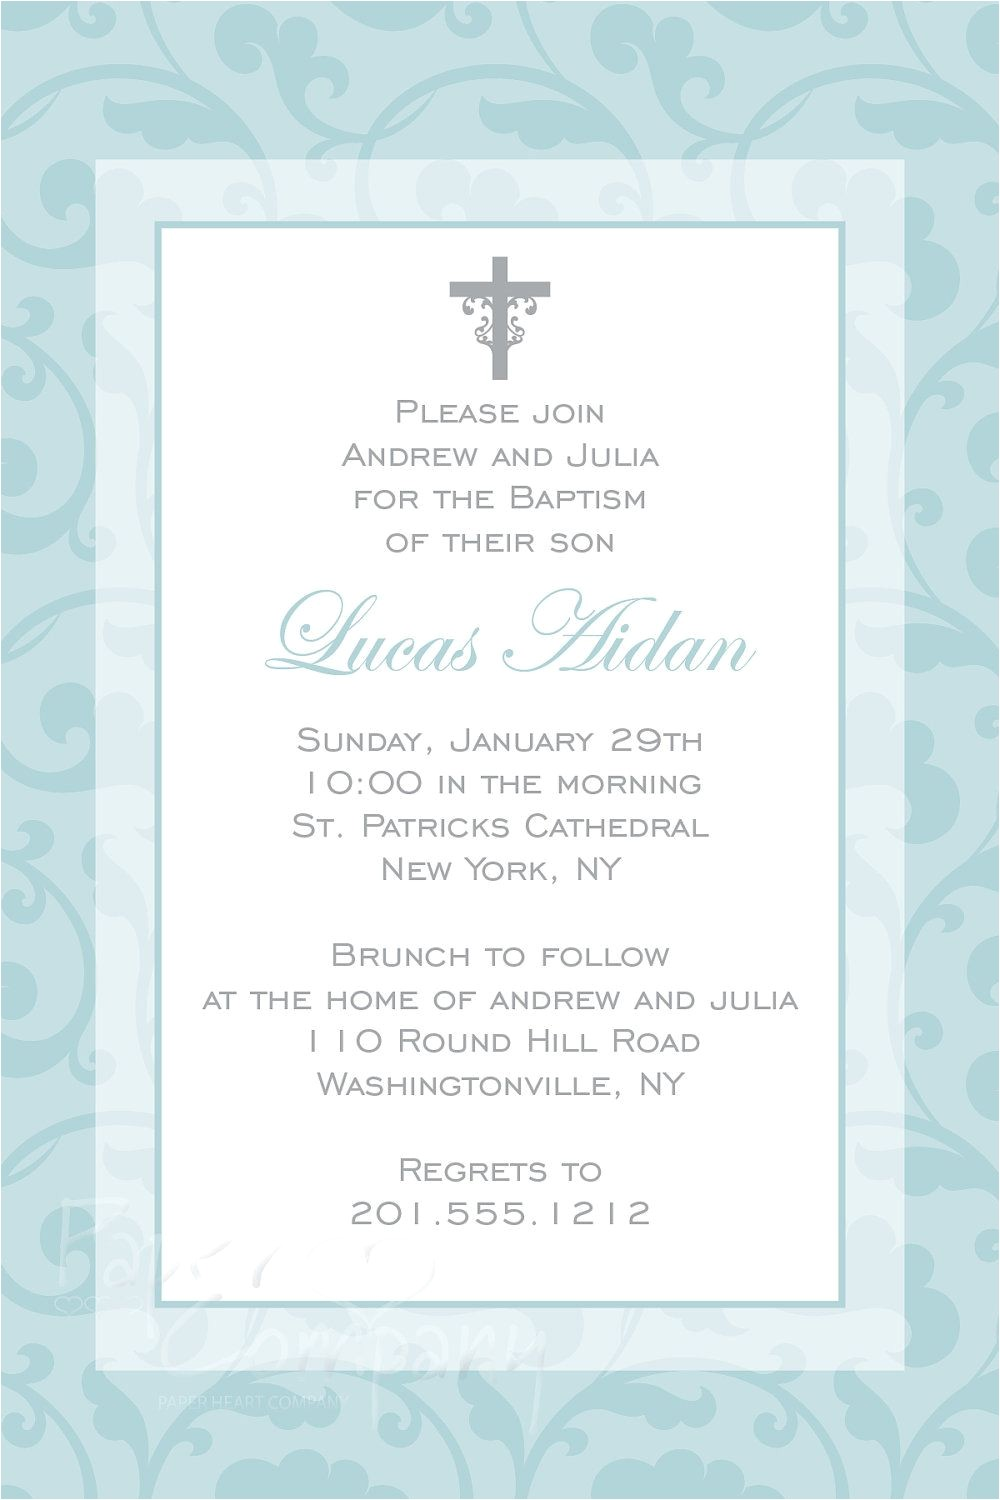 Invitations for Baptism Catholic Catholic Baptism Invitations Catholic Baptism Invitation